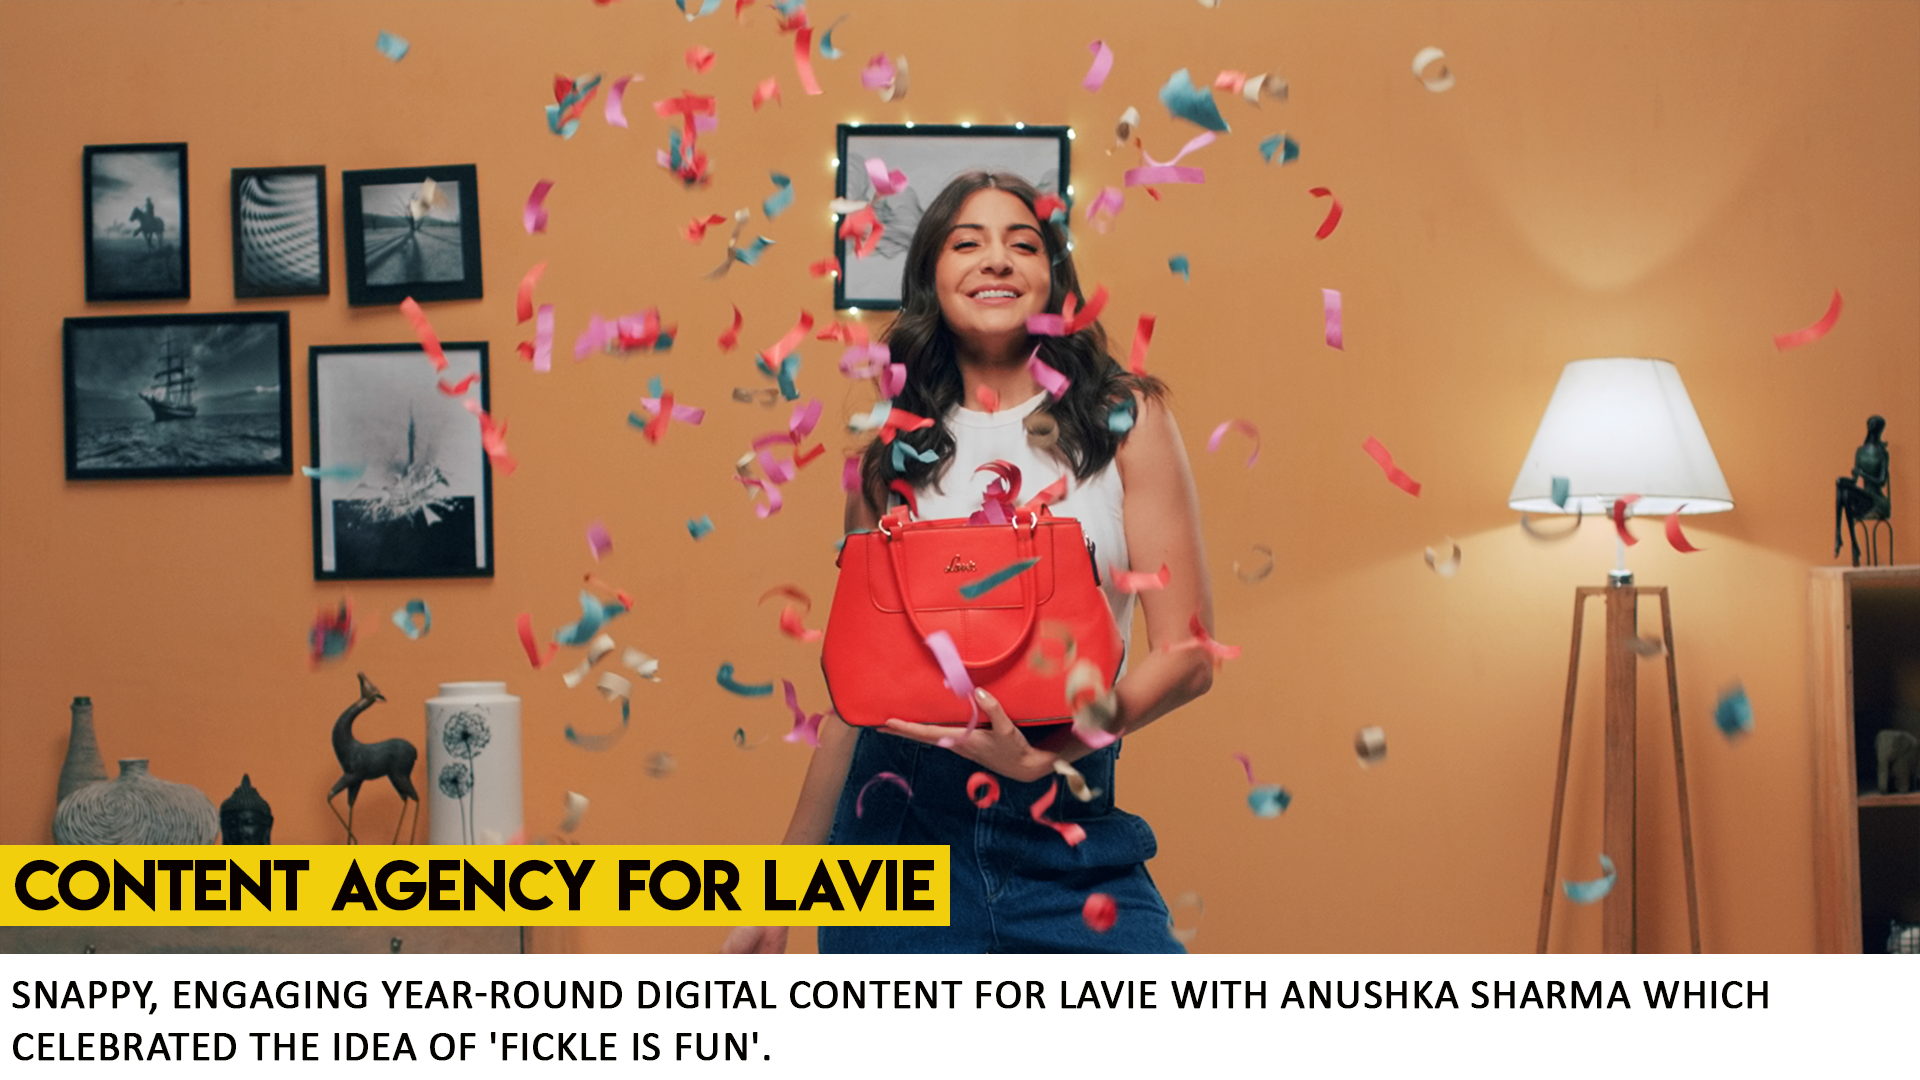 Lavie Content Agency